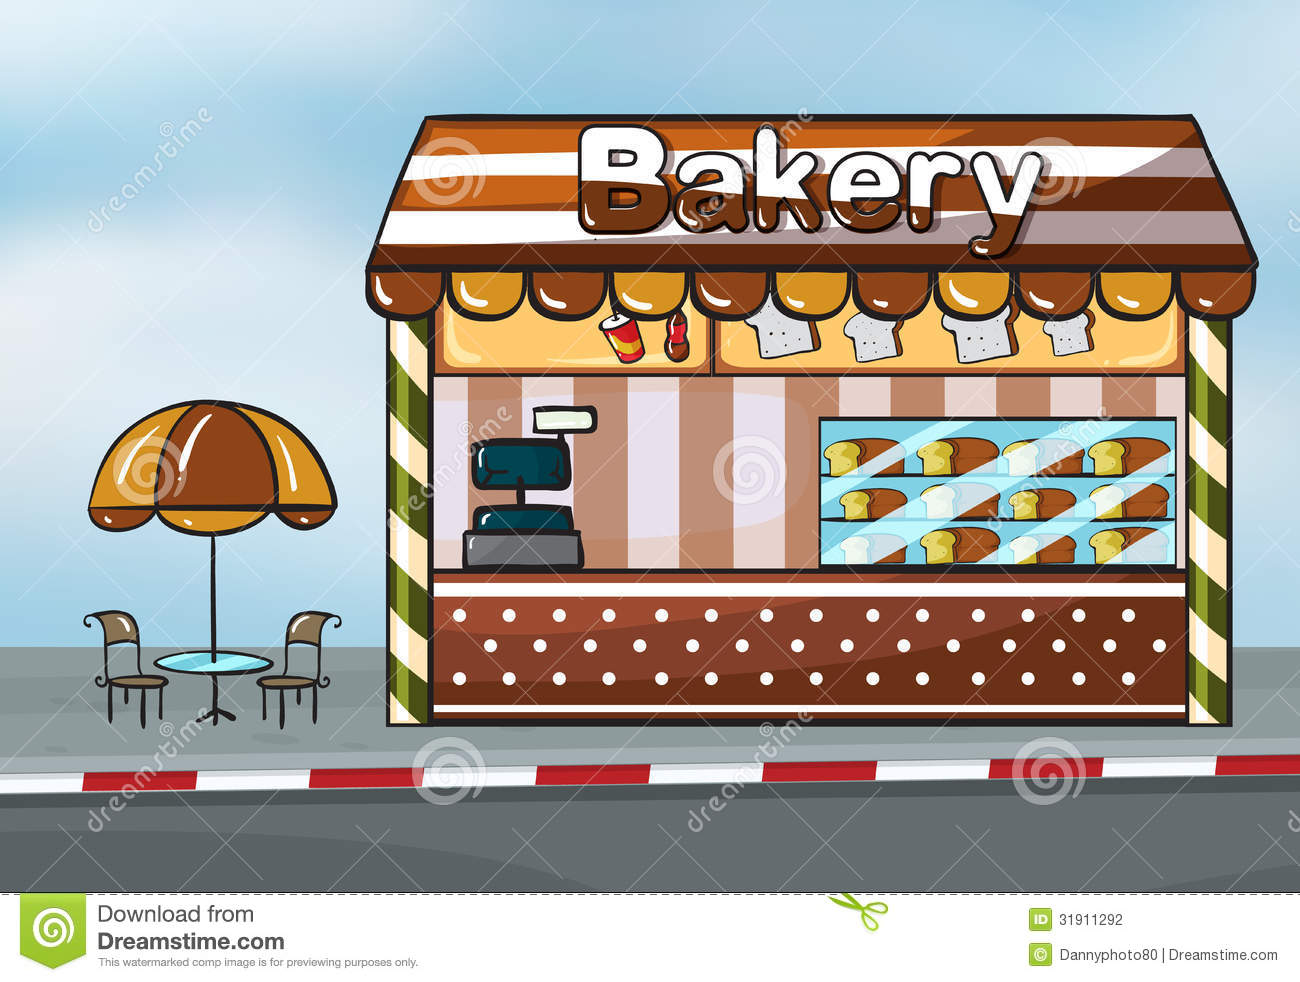 Display clipart baker Clipart Bakery Shoppe cliparts Bakery